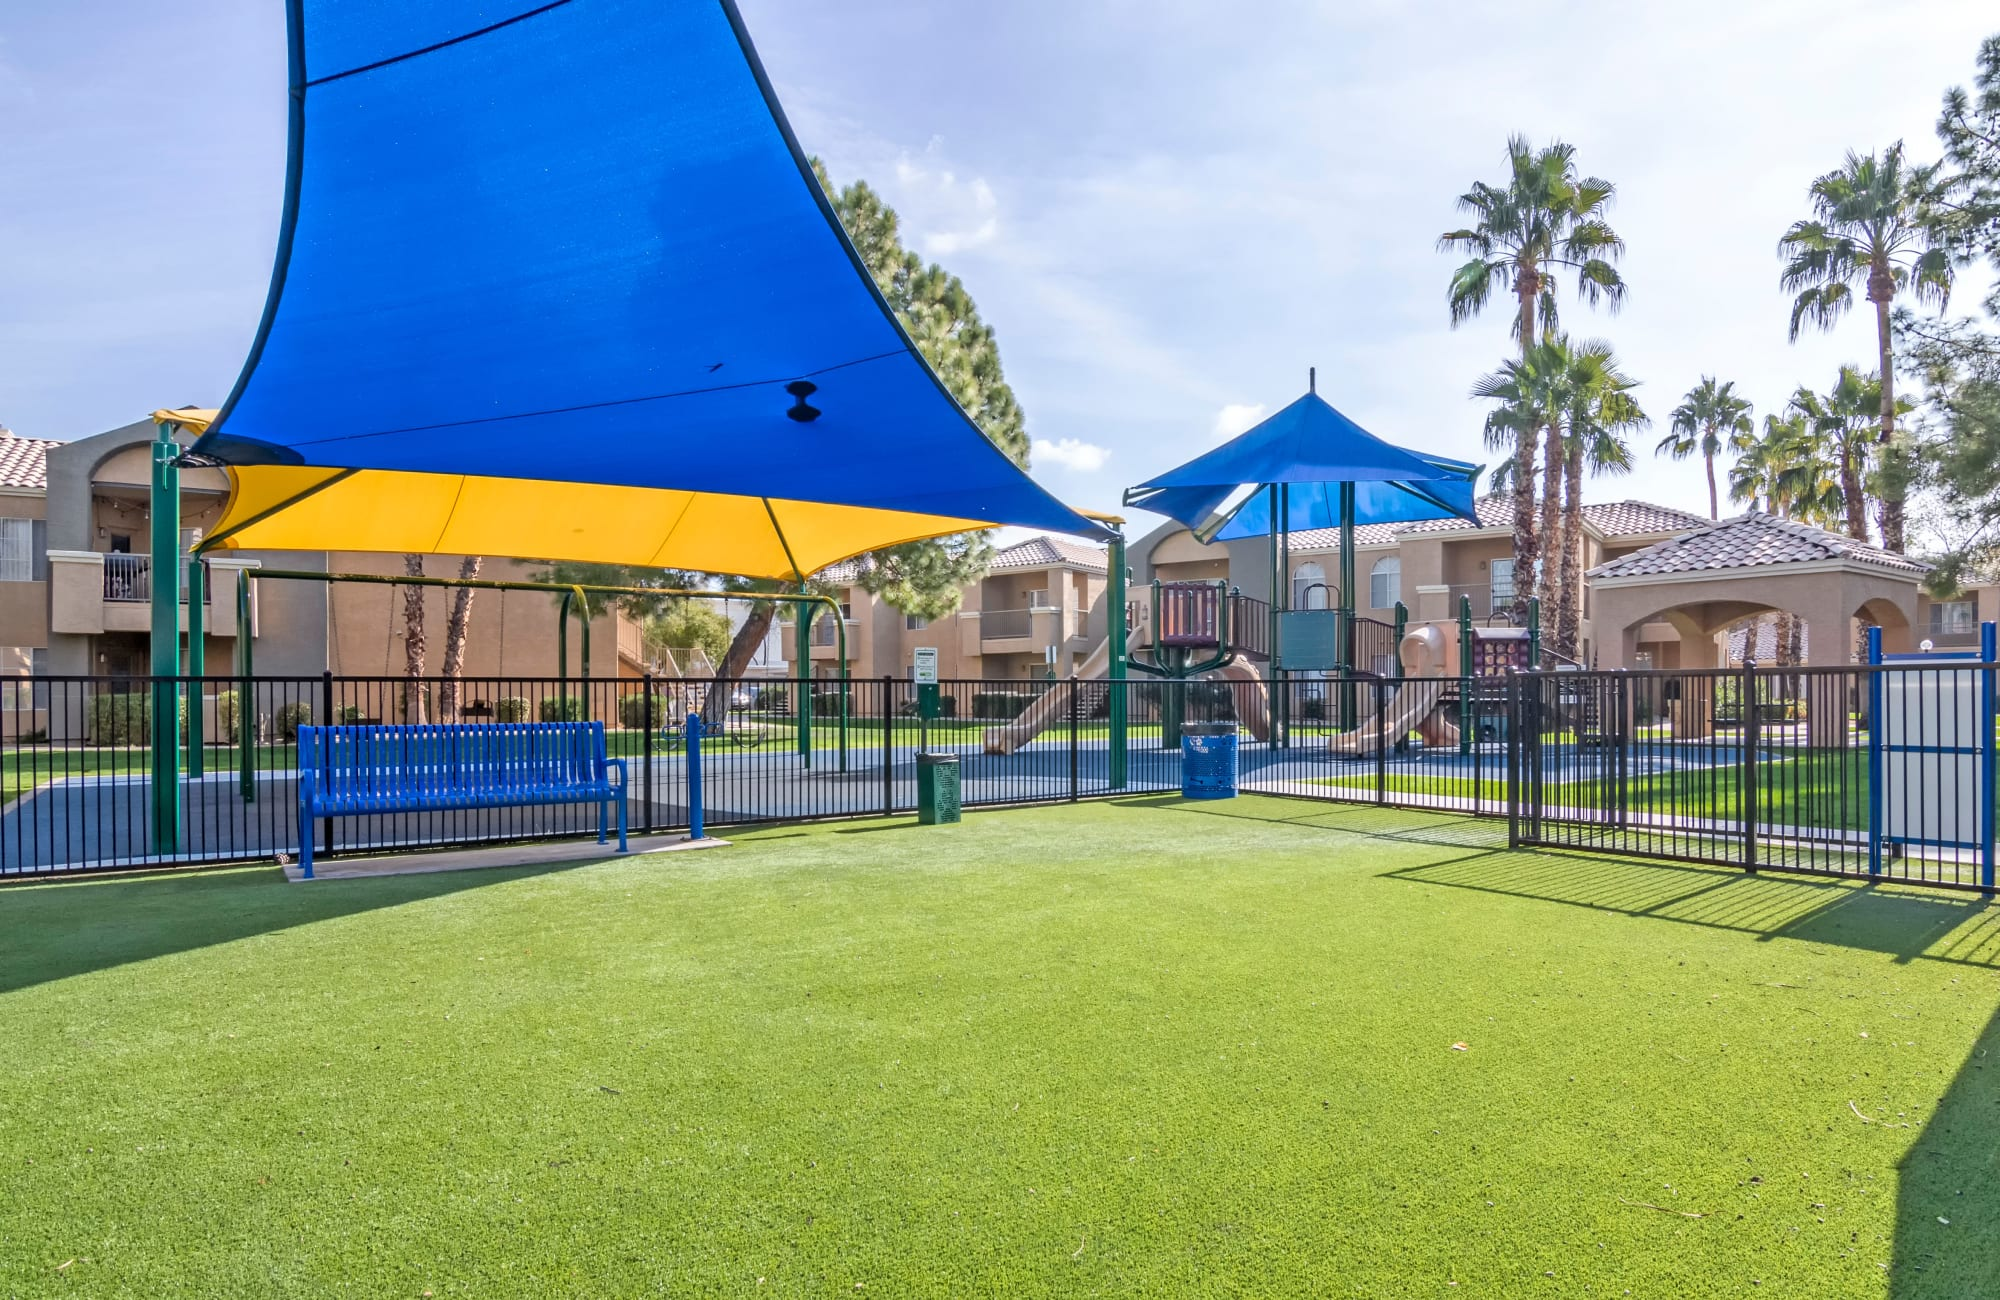 Playground at The Boulevard in Phoenix, Arizona